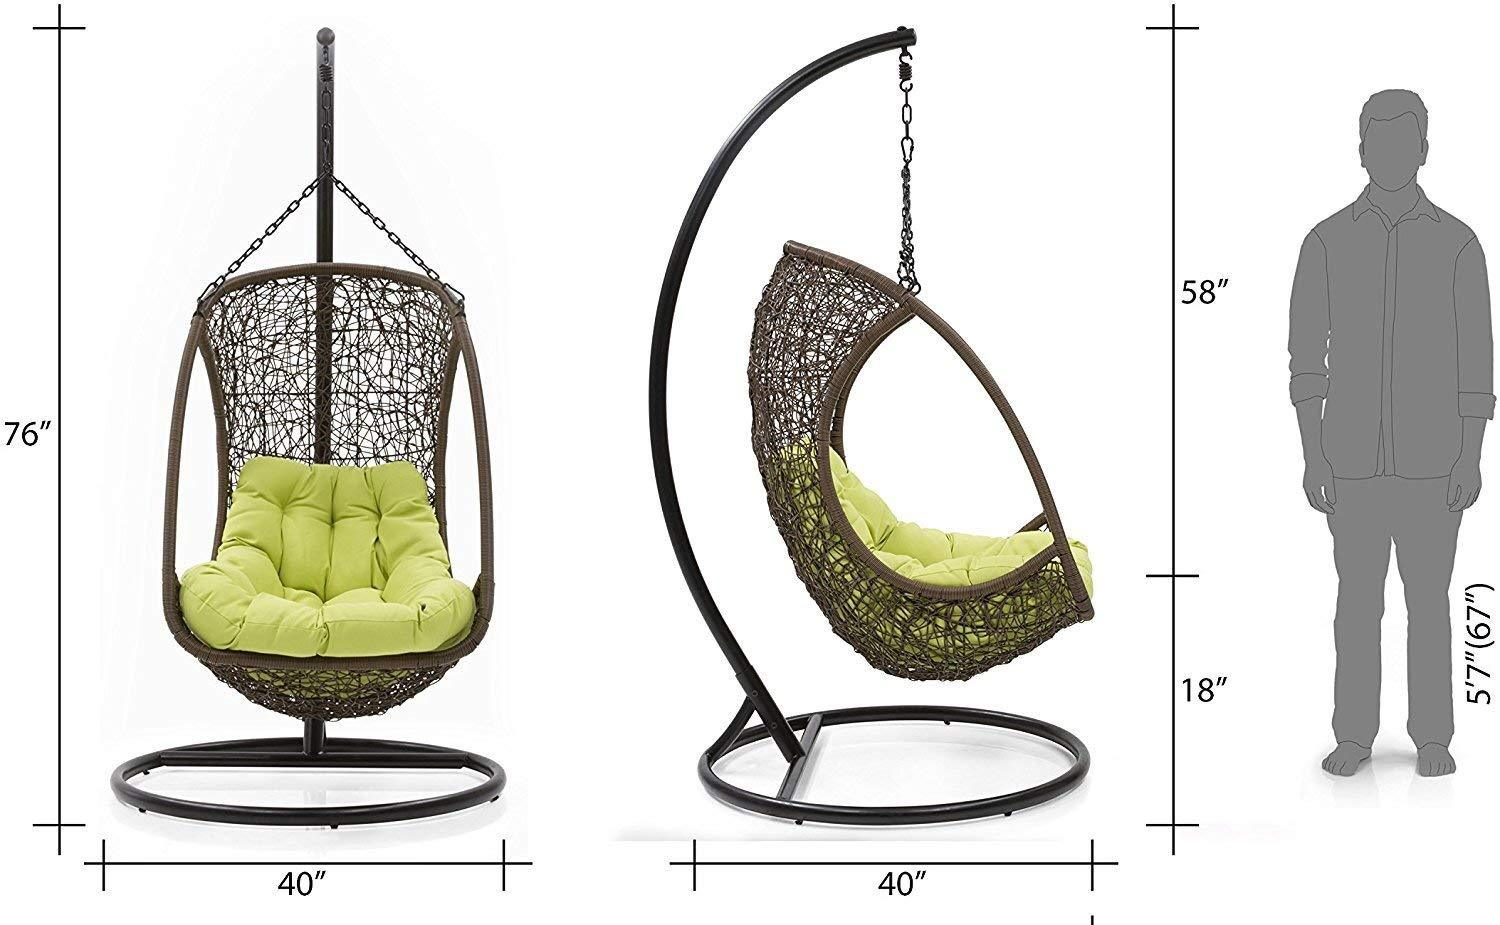 Insignia Balcony Swing Chair with Stand (Brown)